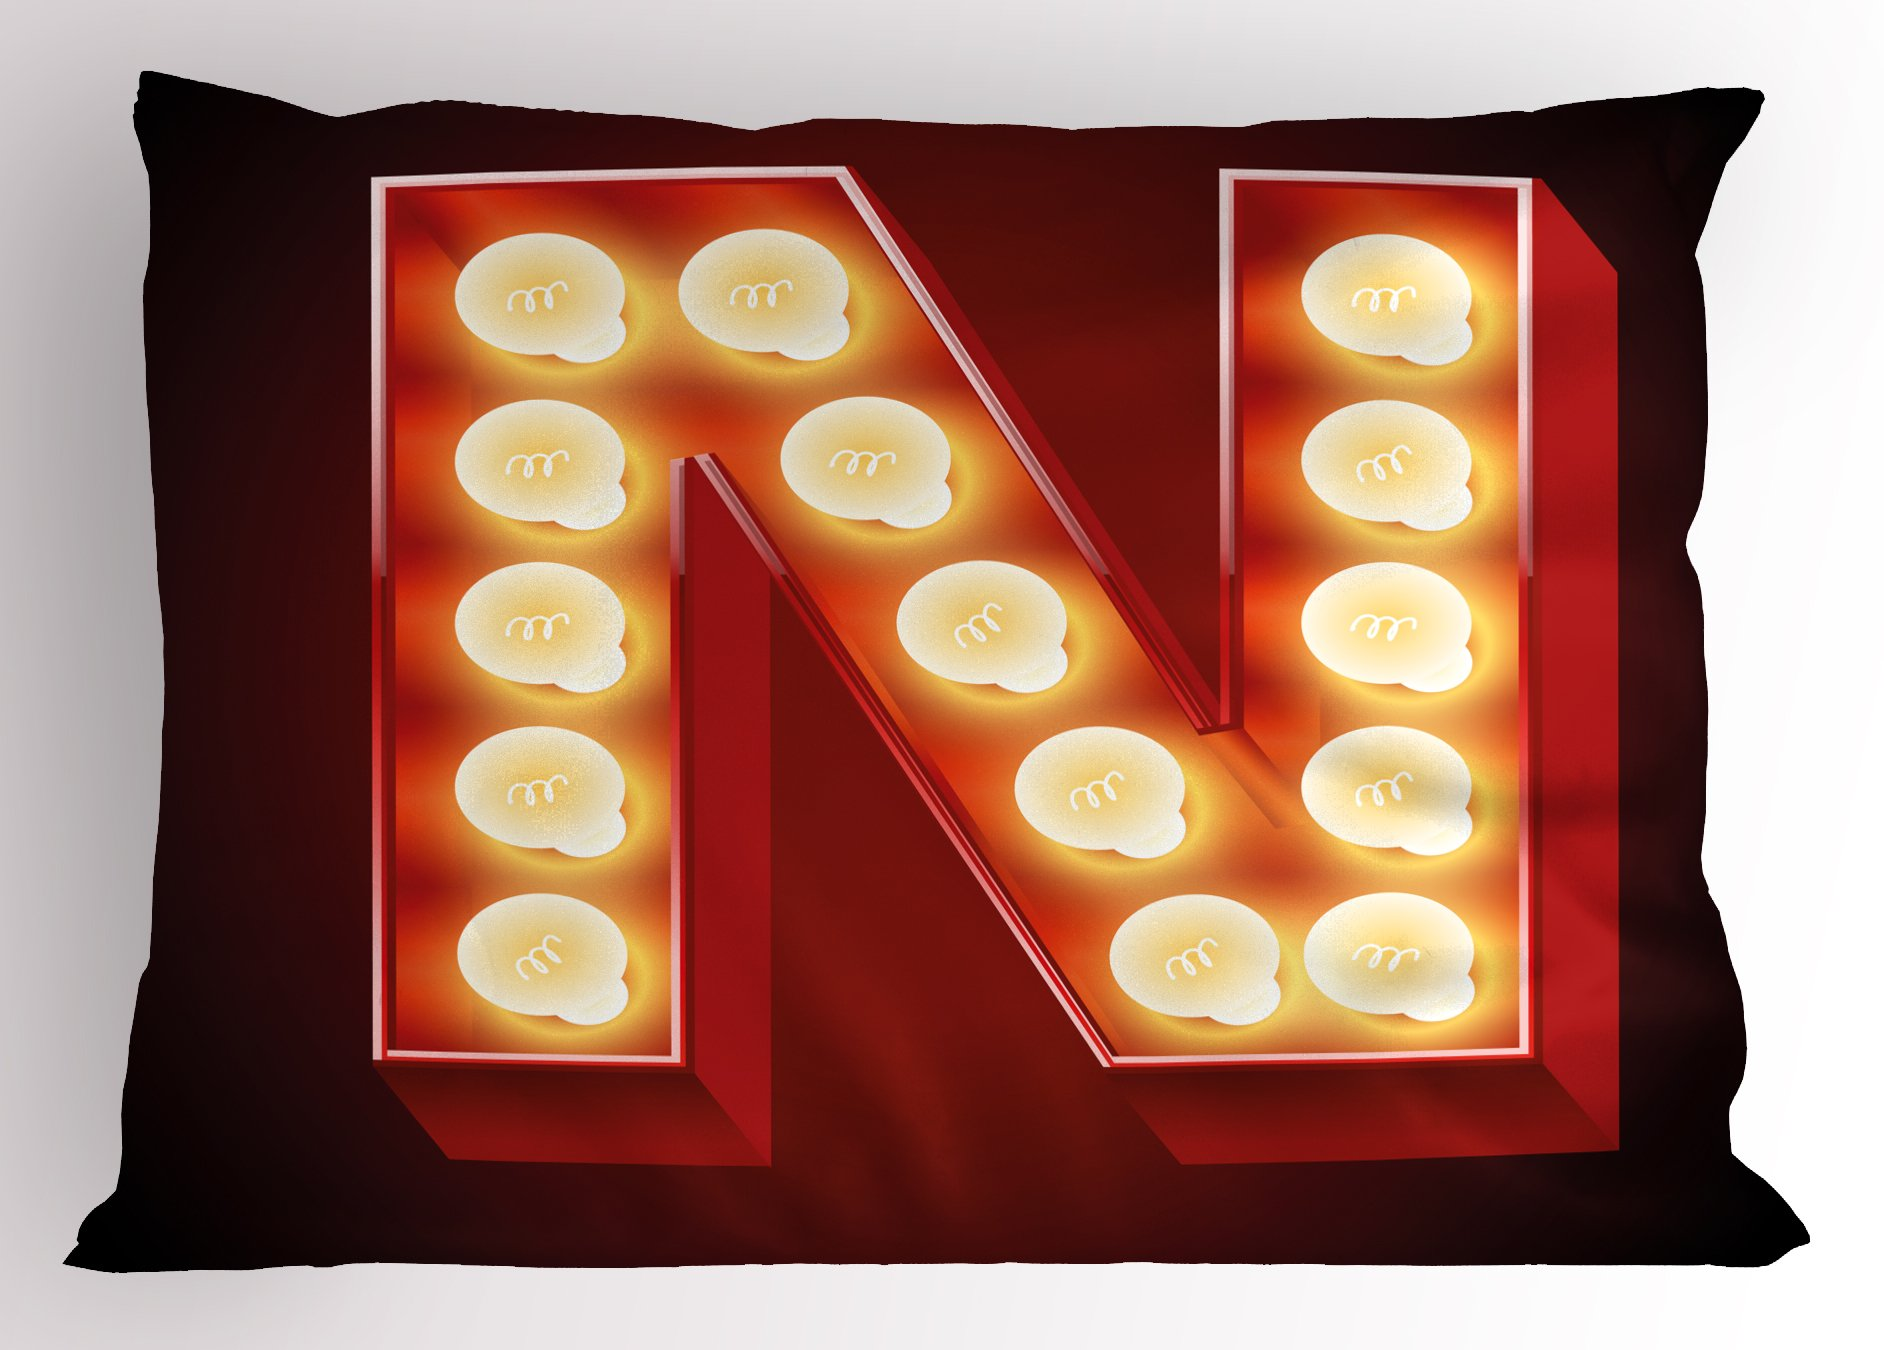 Ambesonne Letter N Pillow Sham, Old Fashioned Movie Theater Carnival Casino Entertainment Night Life, Decorative Standard Queen Size Printed Pillowcase, 30 X 20 inches, Vermilion Yellow Black